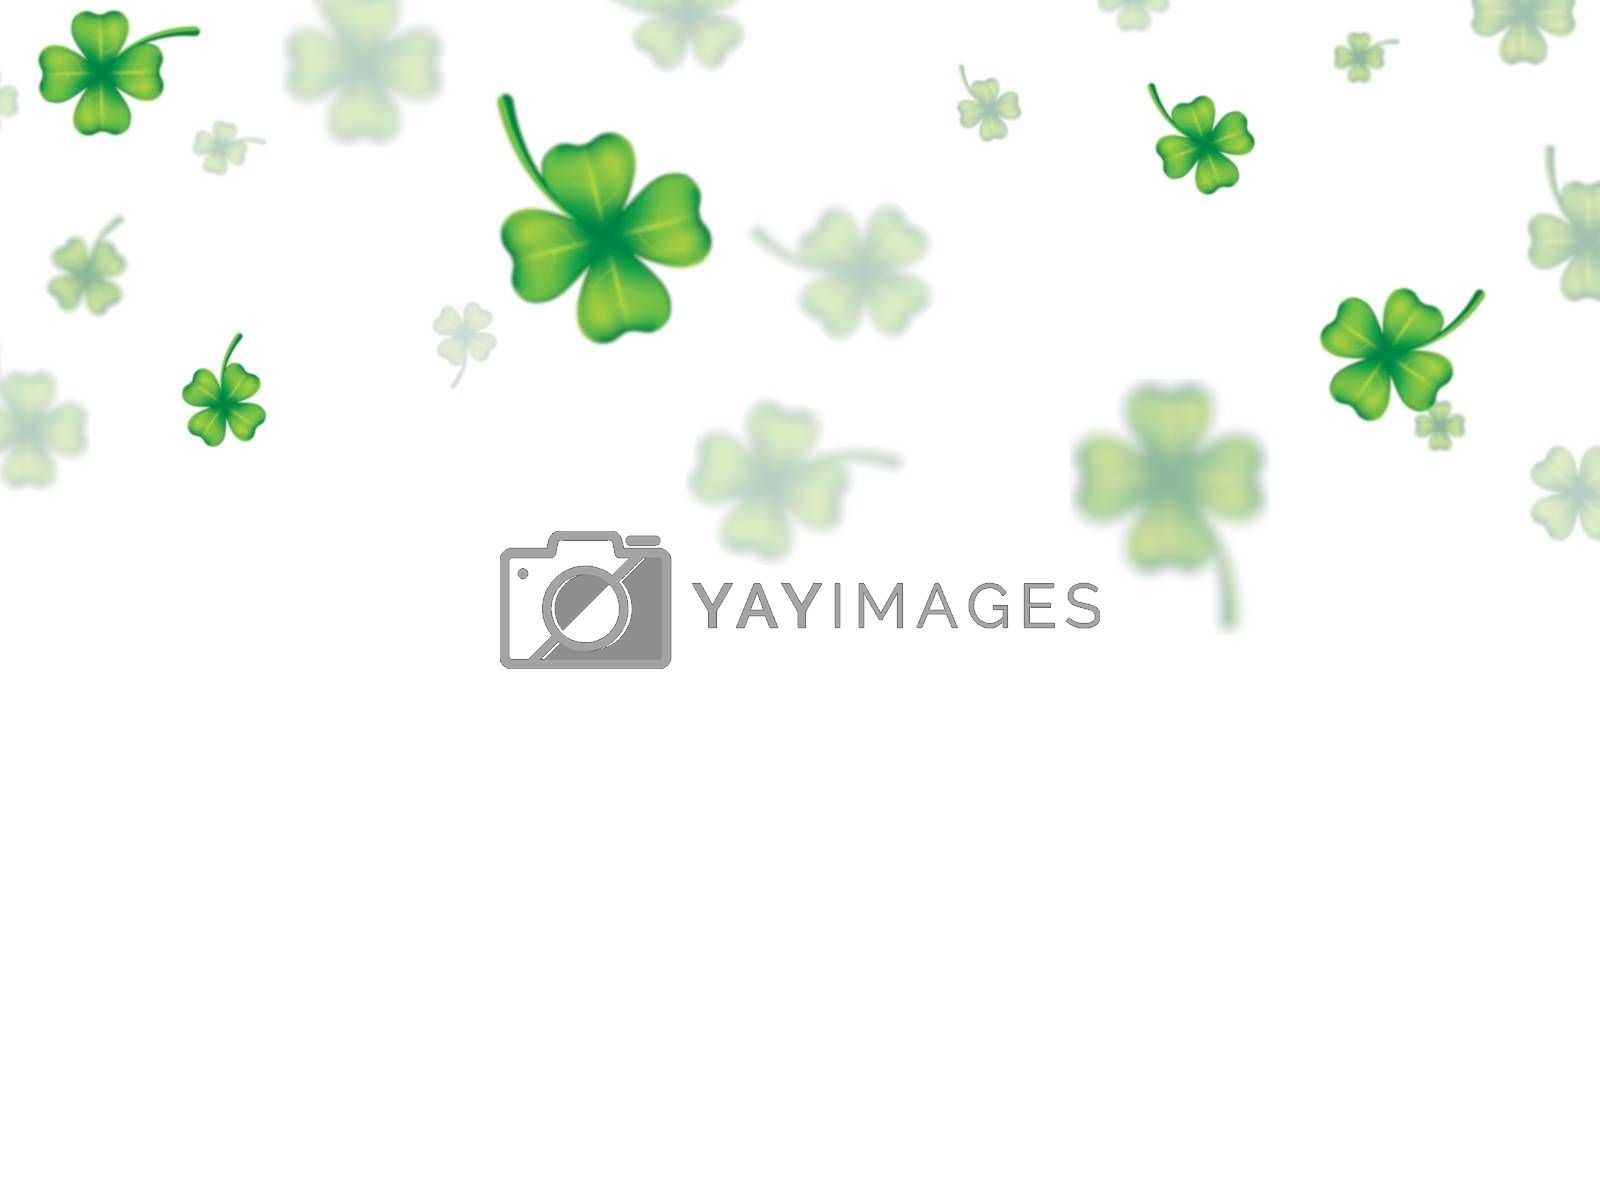 Royalty free image of Green shamrock leaves decorated on white background for St. Patr by aispl